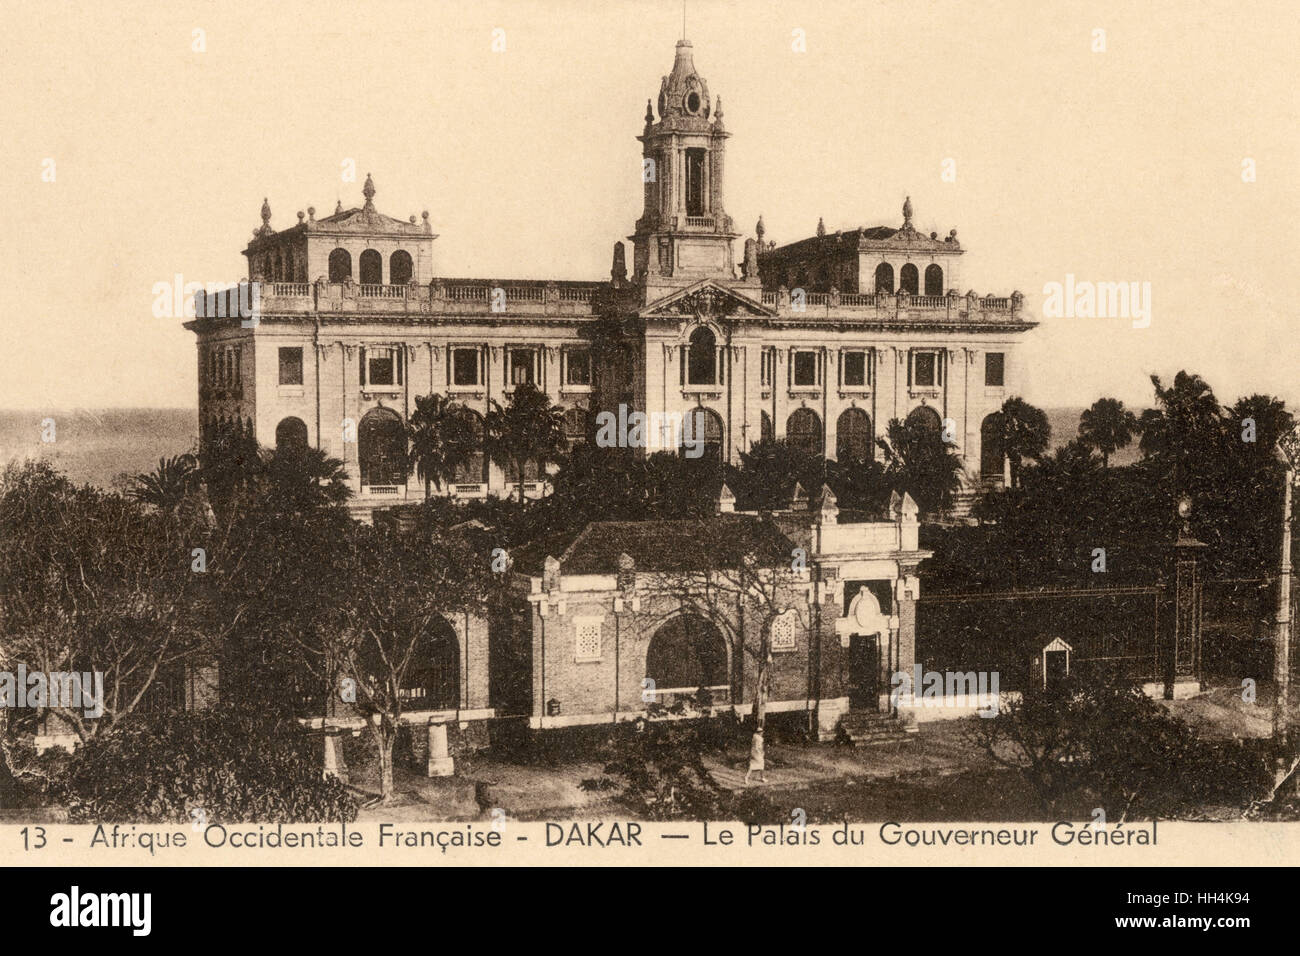 Palace of the General Governor of French West Africa in Dakar, Senegal. - Stock Image